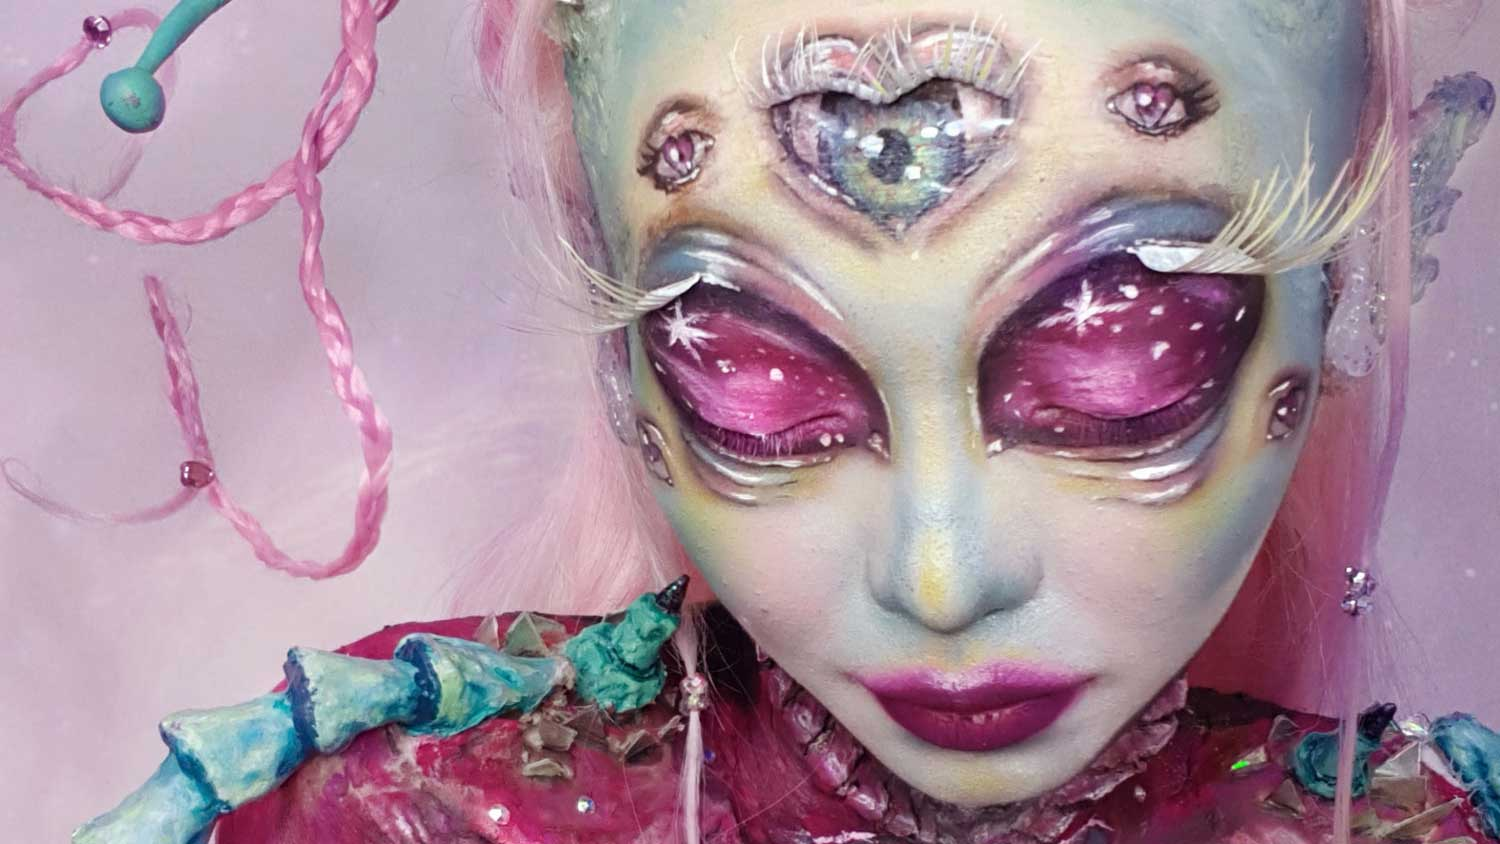 Cosplayer mom's winning extra-terrestrial look